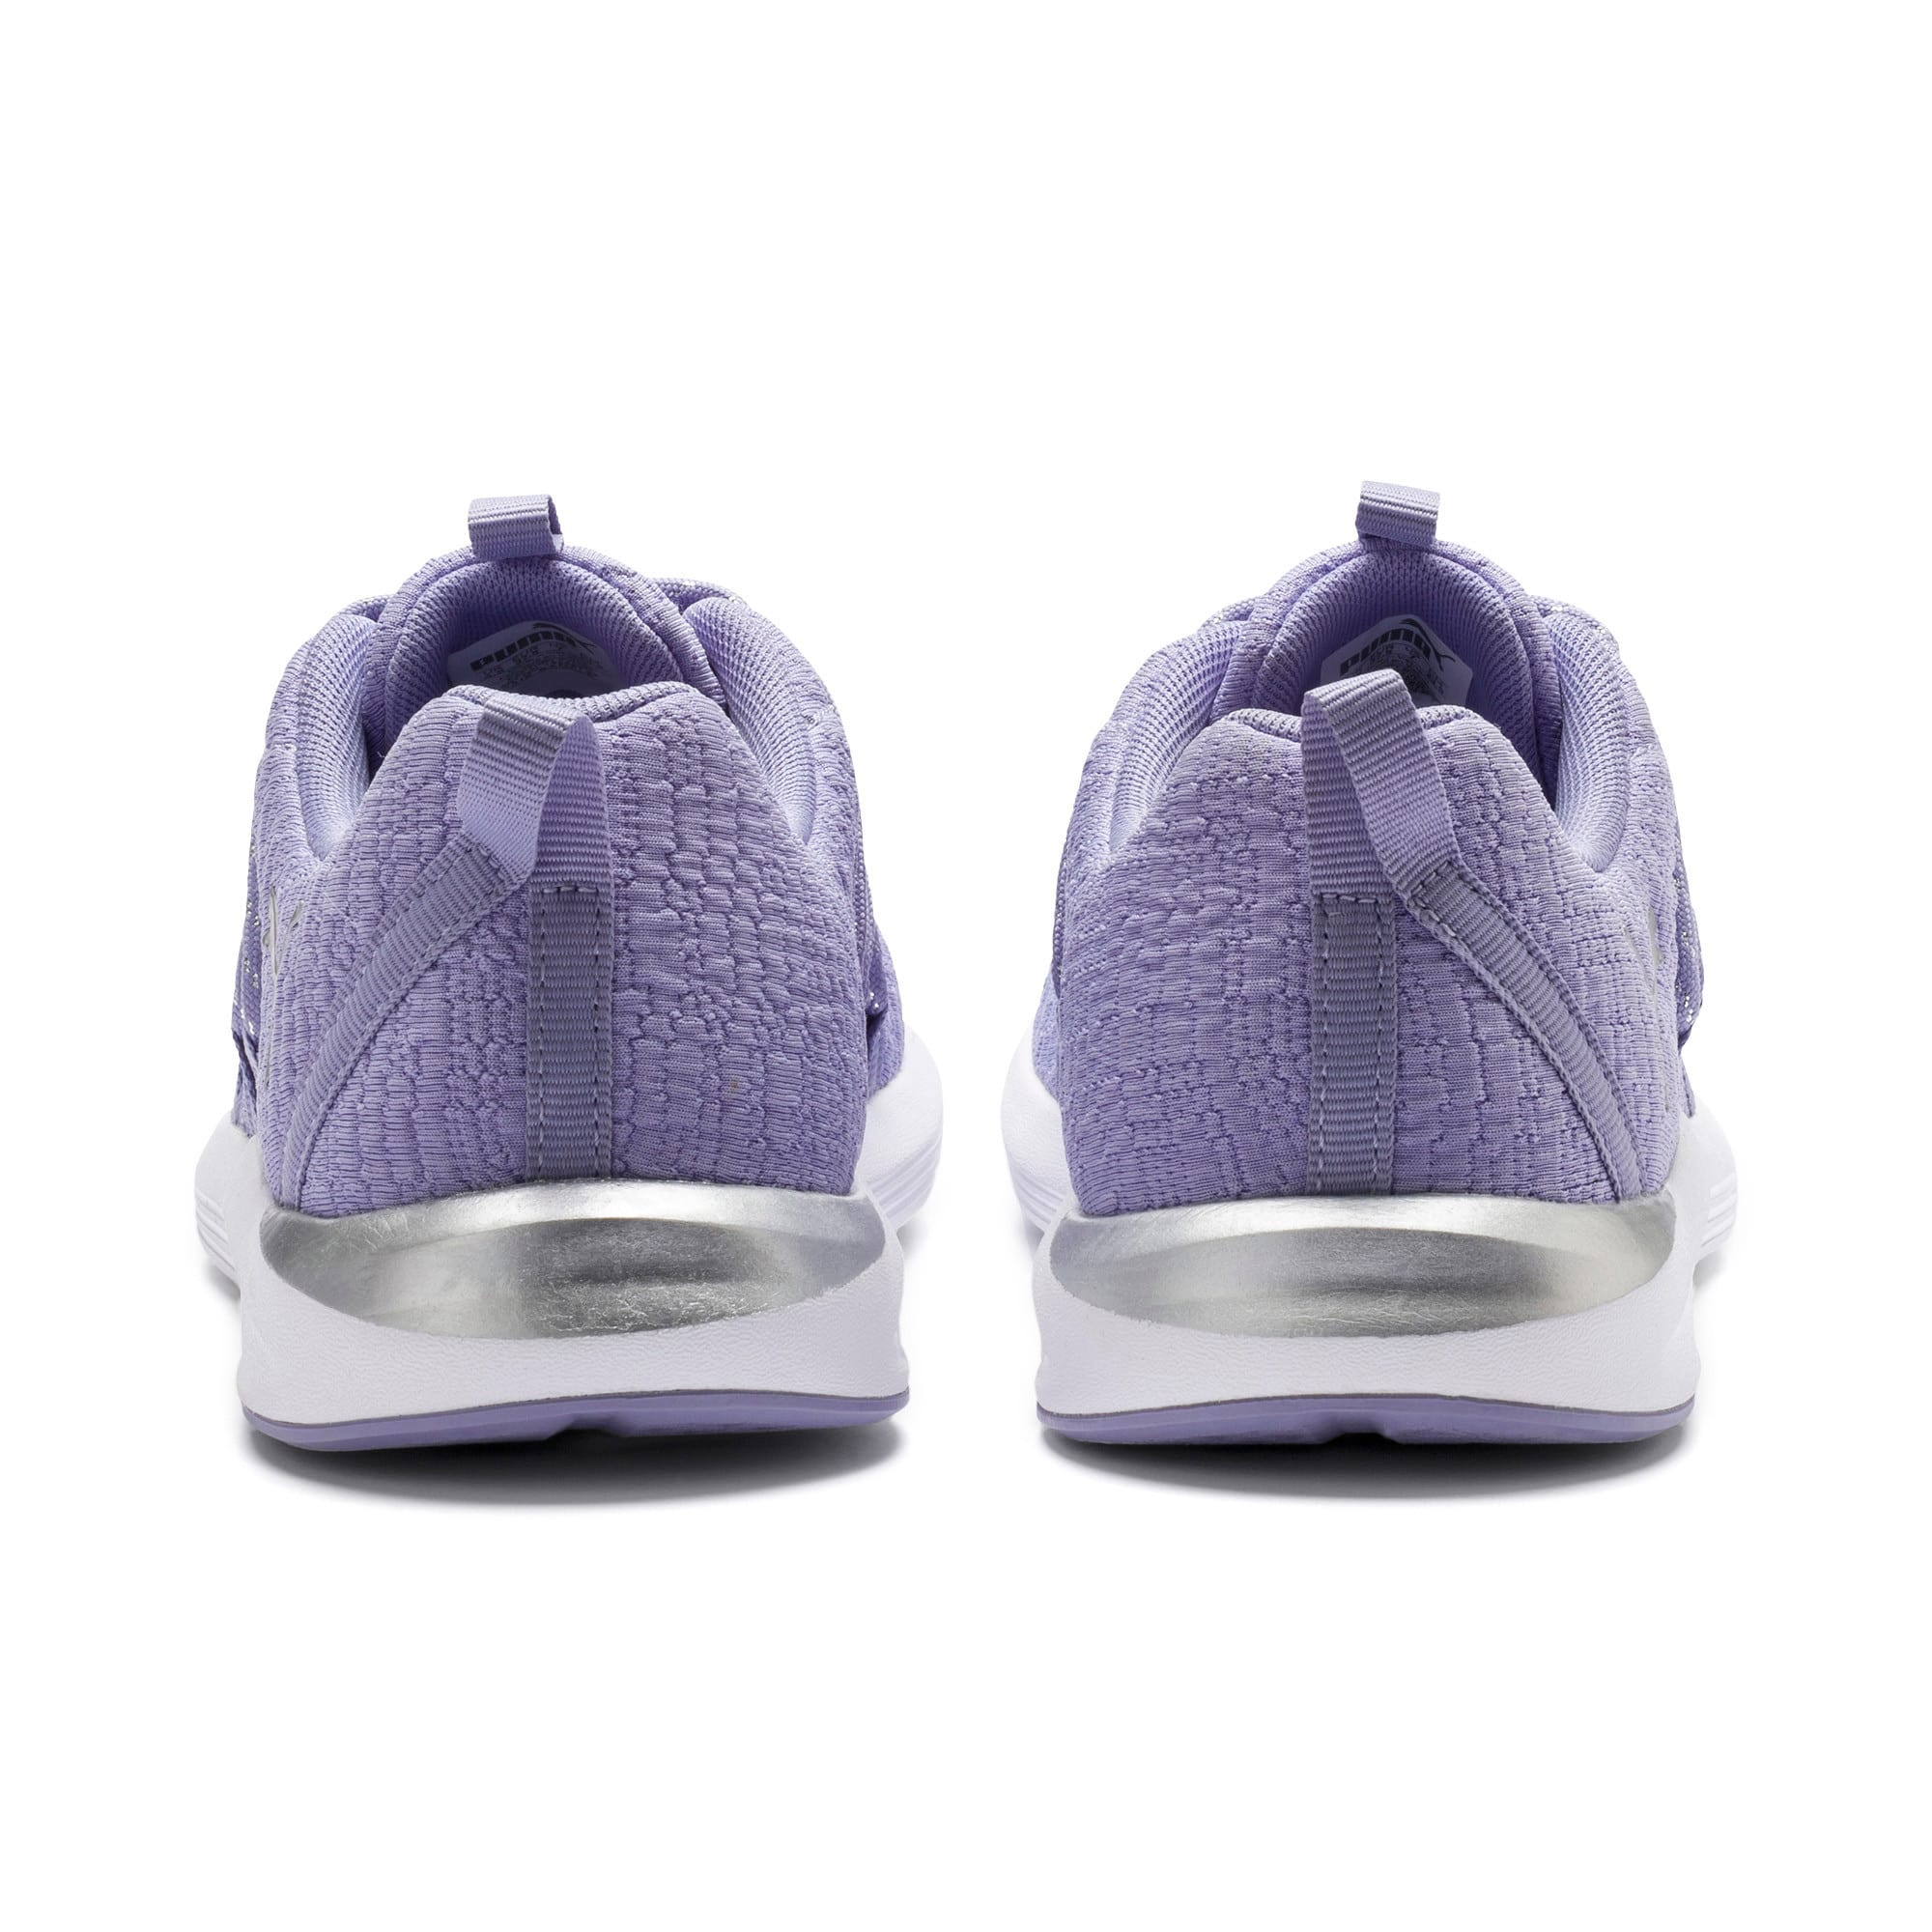 Thumbnail 4 of Prowl Alt Metallic Women's Training Shoes, Sweet Lavender-Puma White, medium